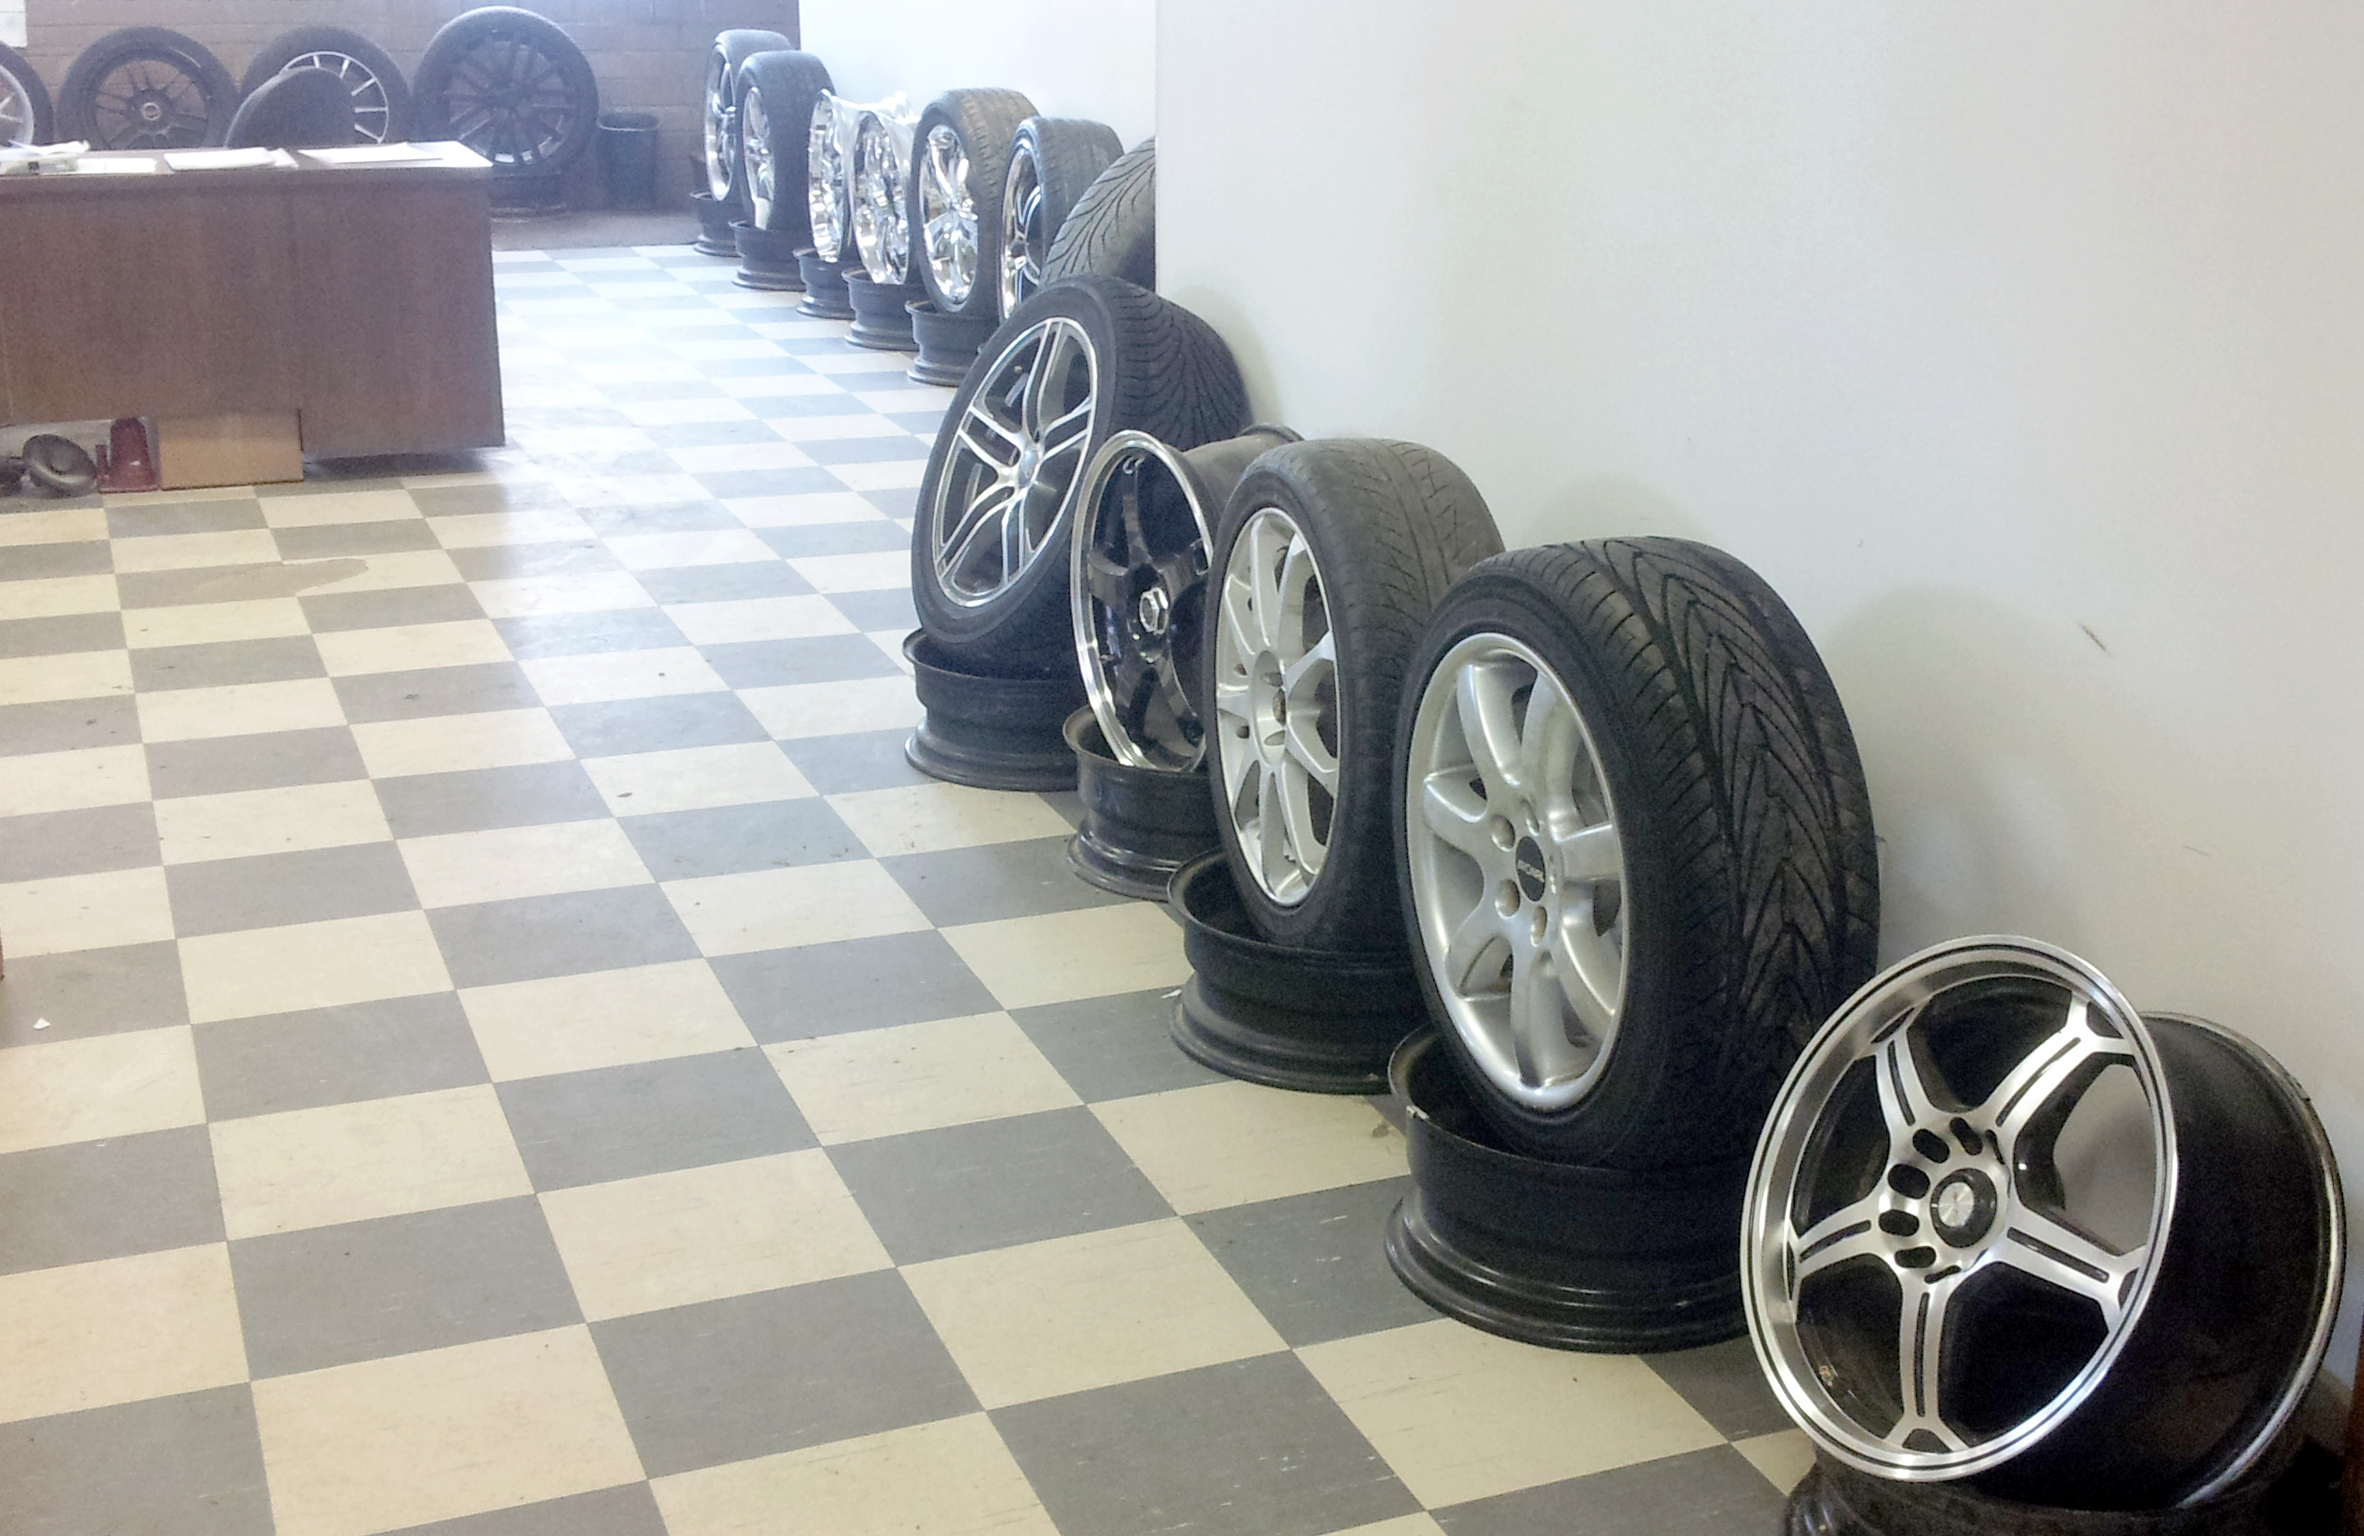 More alloy wheels